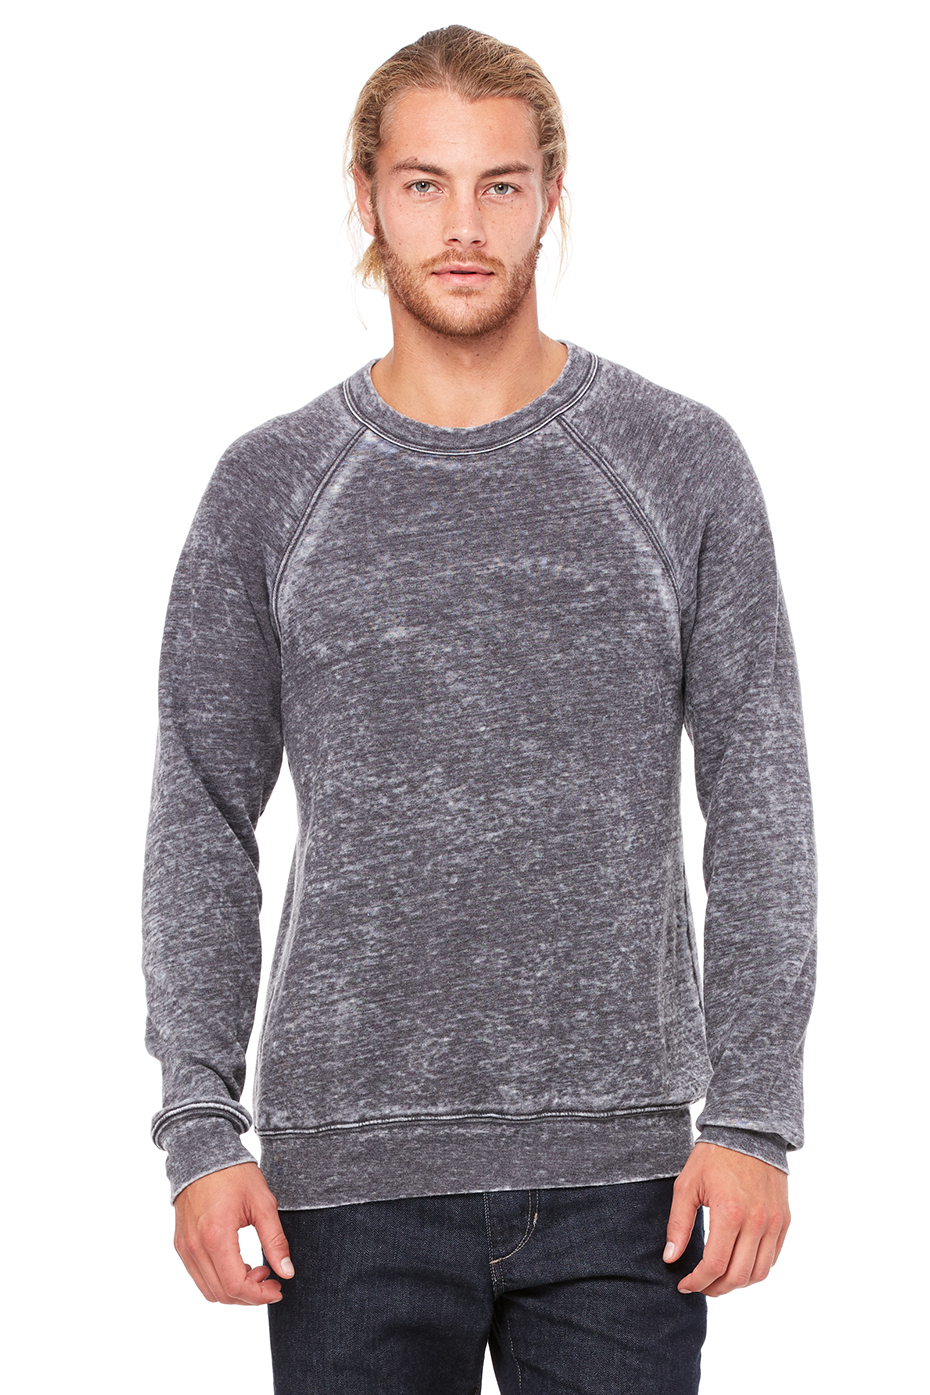 Unisex Sponge Fleece Raglan Sweatshirt | Bella-Canvas